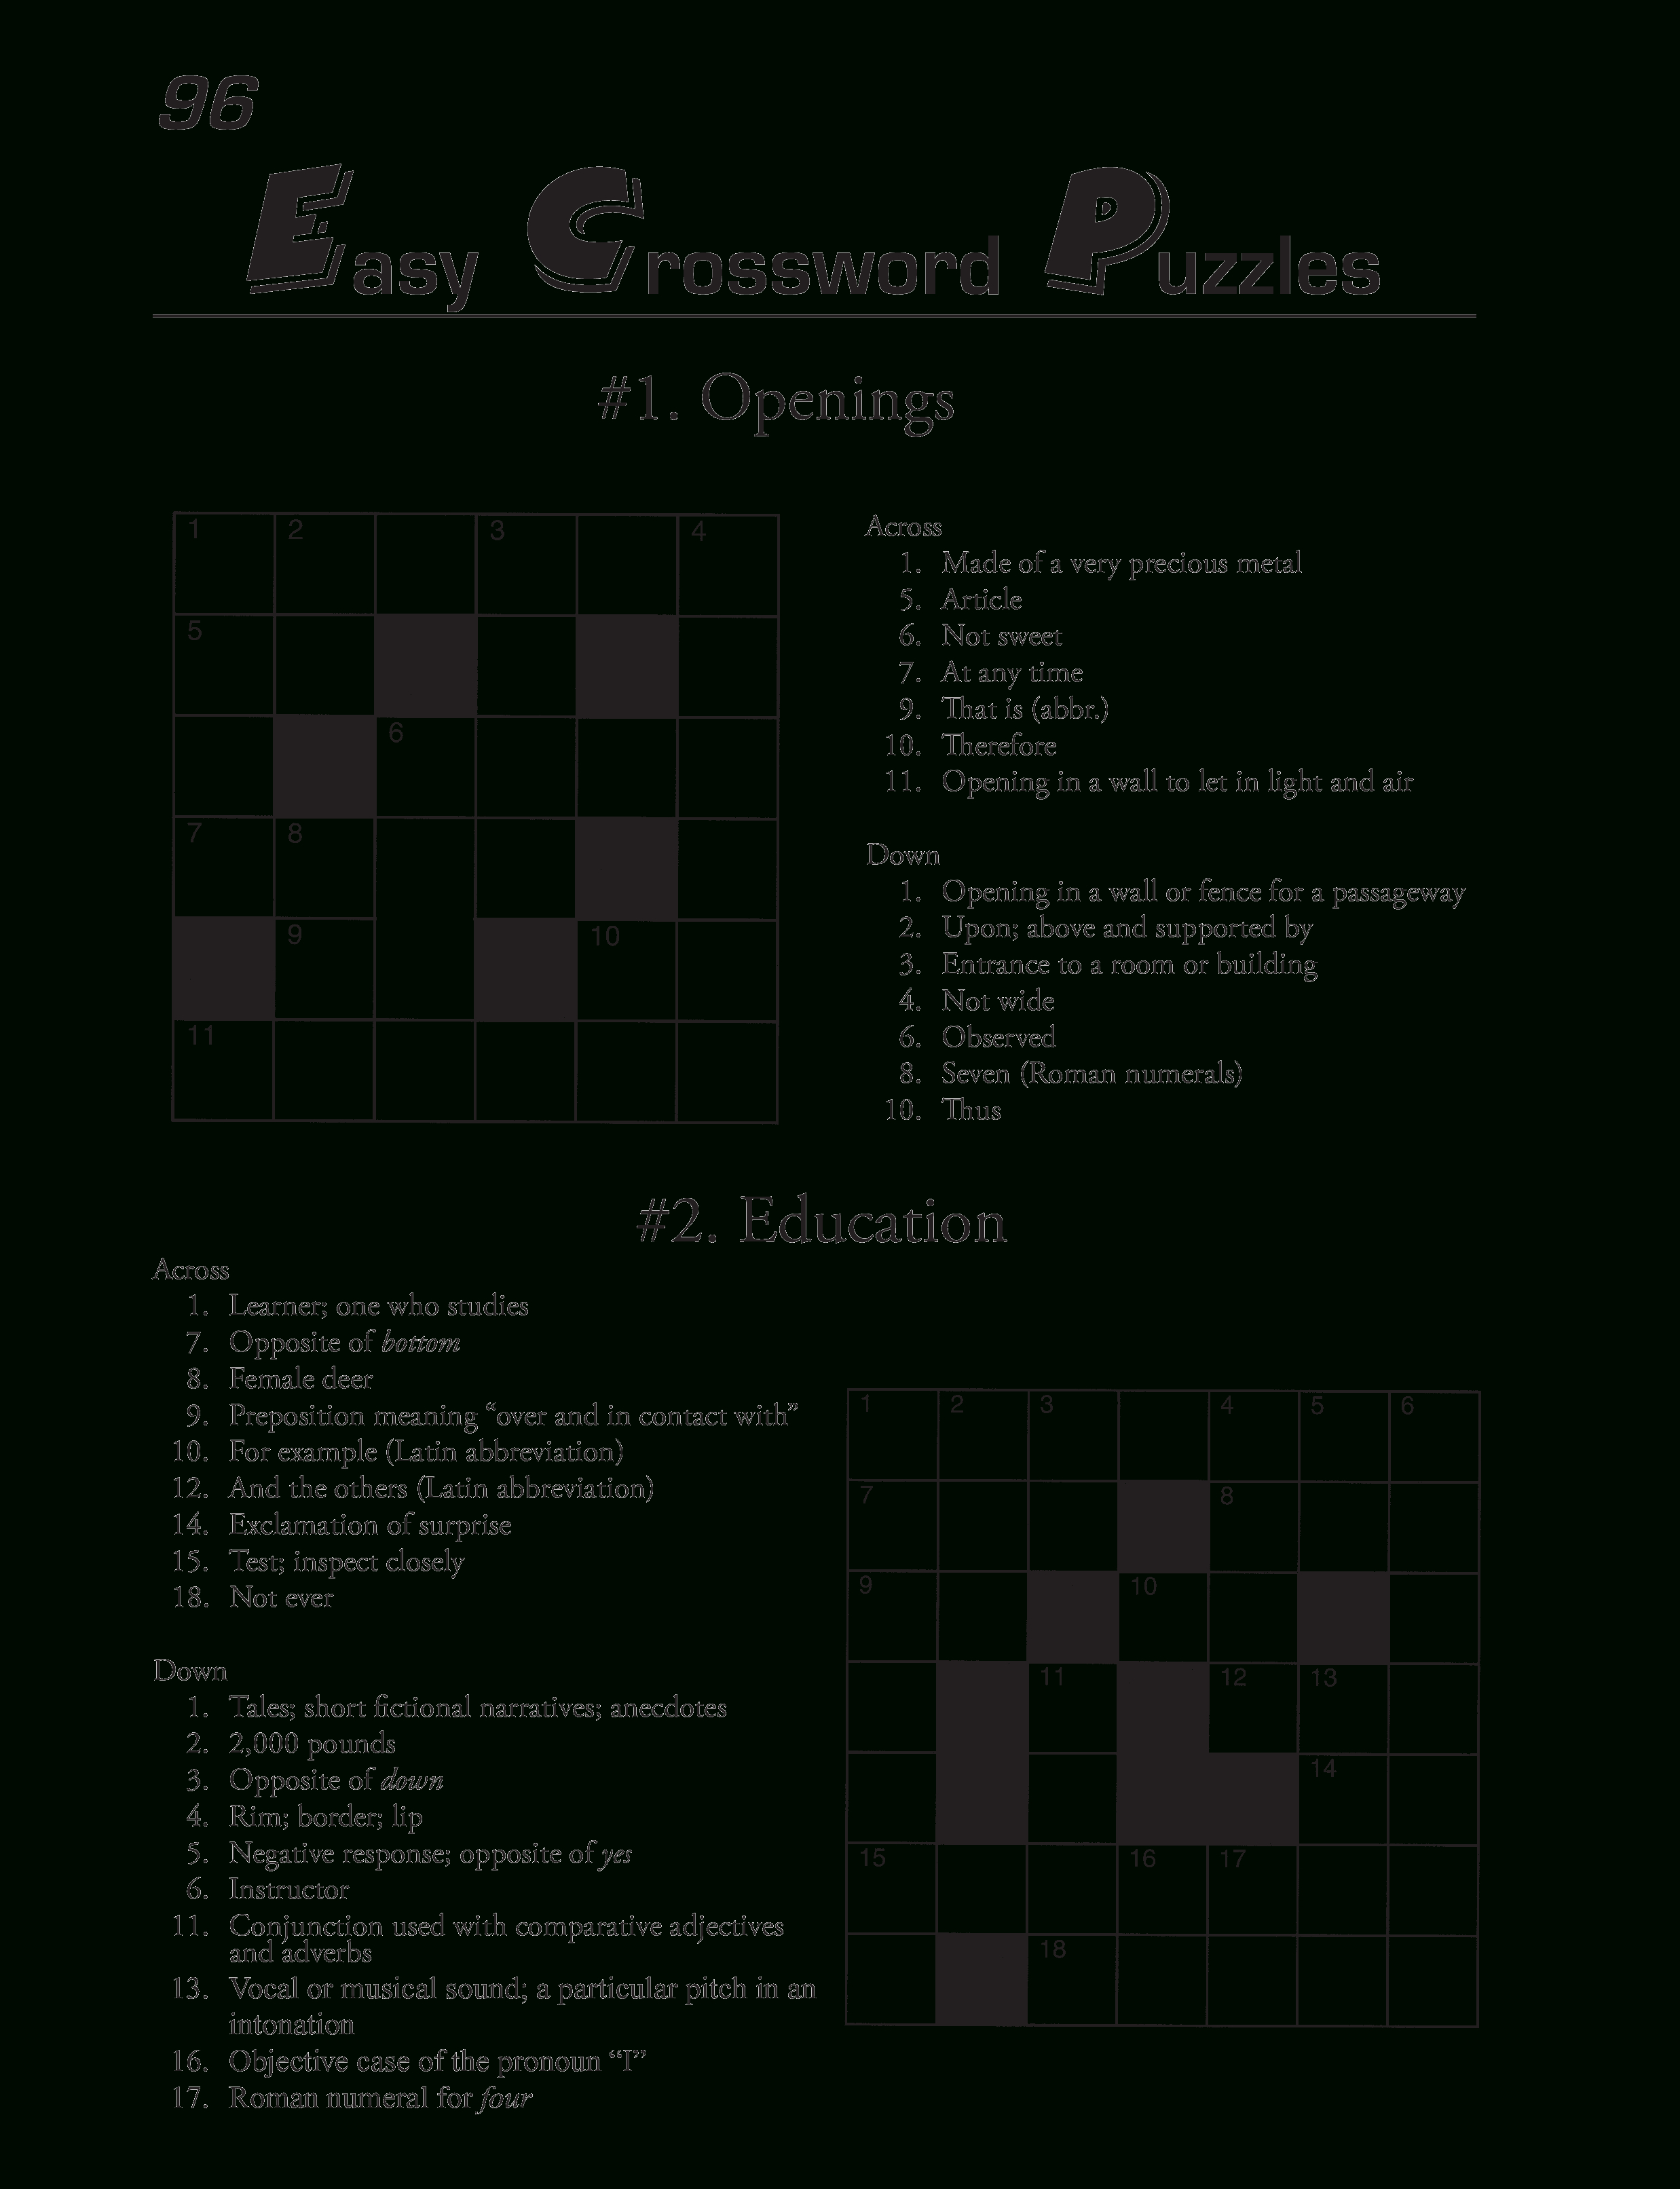 Printable Crossword Puzzles Template | Templates At - Printable Crossword Puzzles No Download